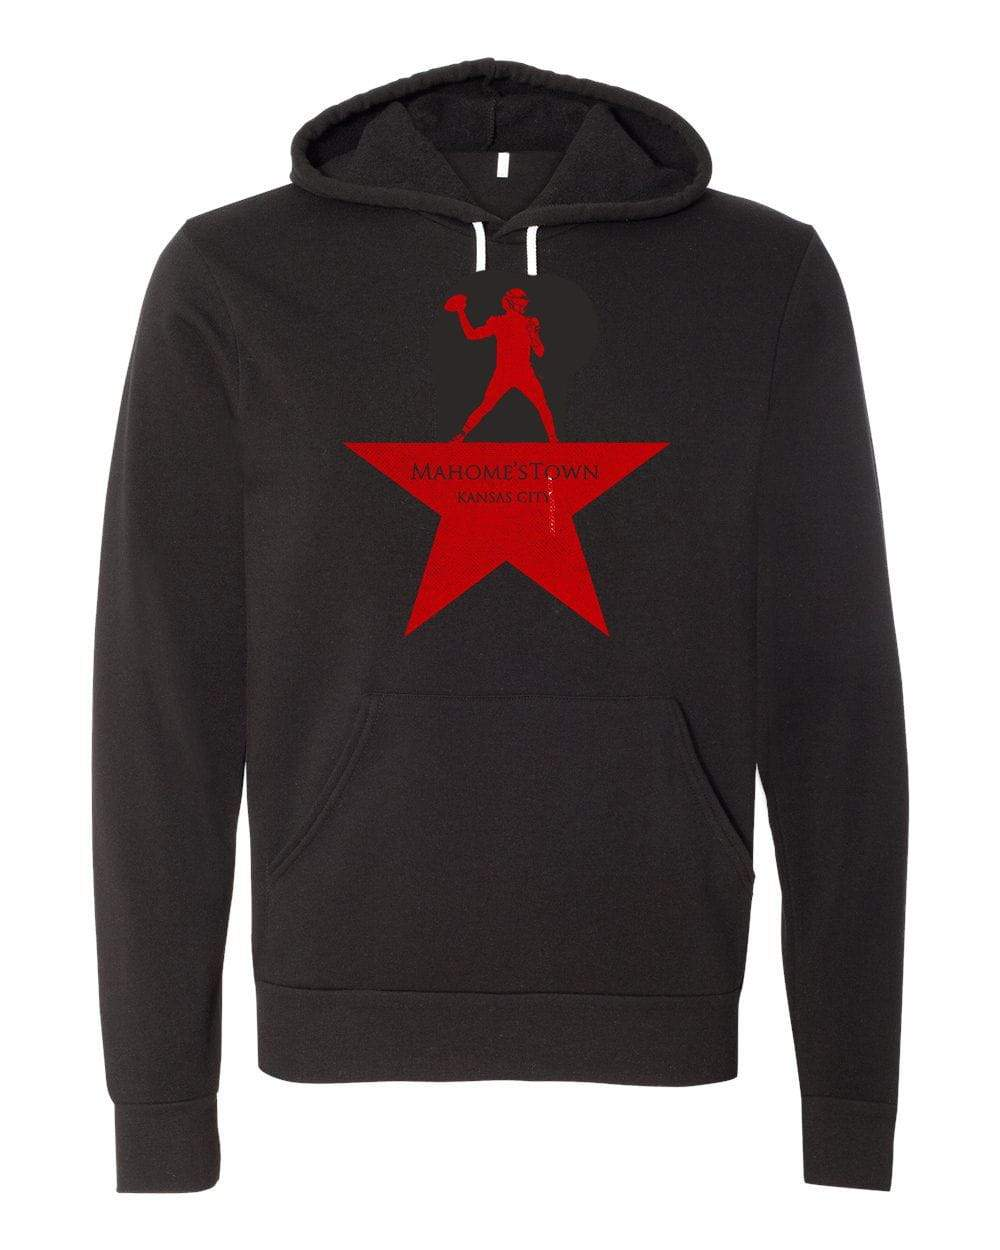 Commandeer Clothing Mahomes Town Pullover Hoodie